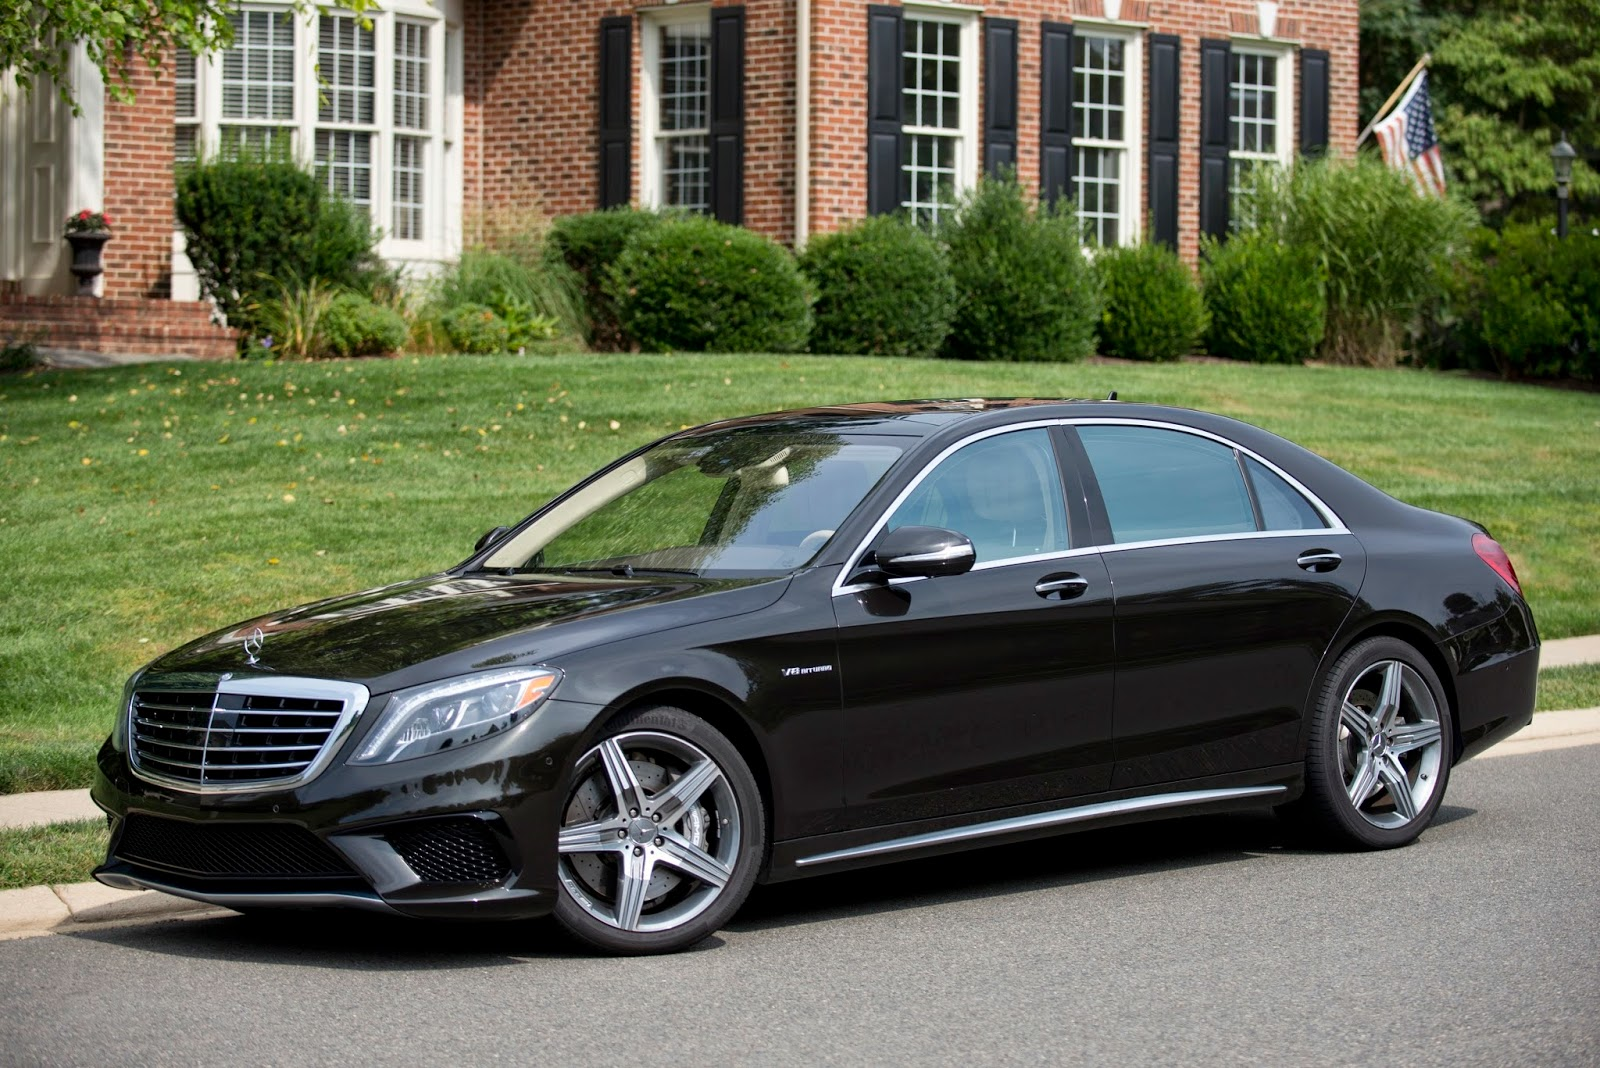 Automotiveblogz 2014 mercedes benz s63 amg 4matic sedan for Mercedes benz s63 amg 2014